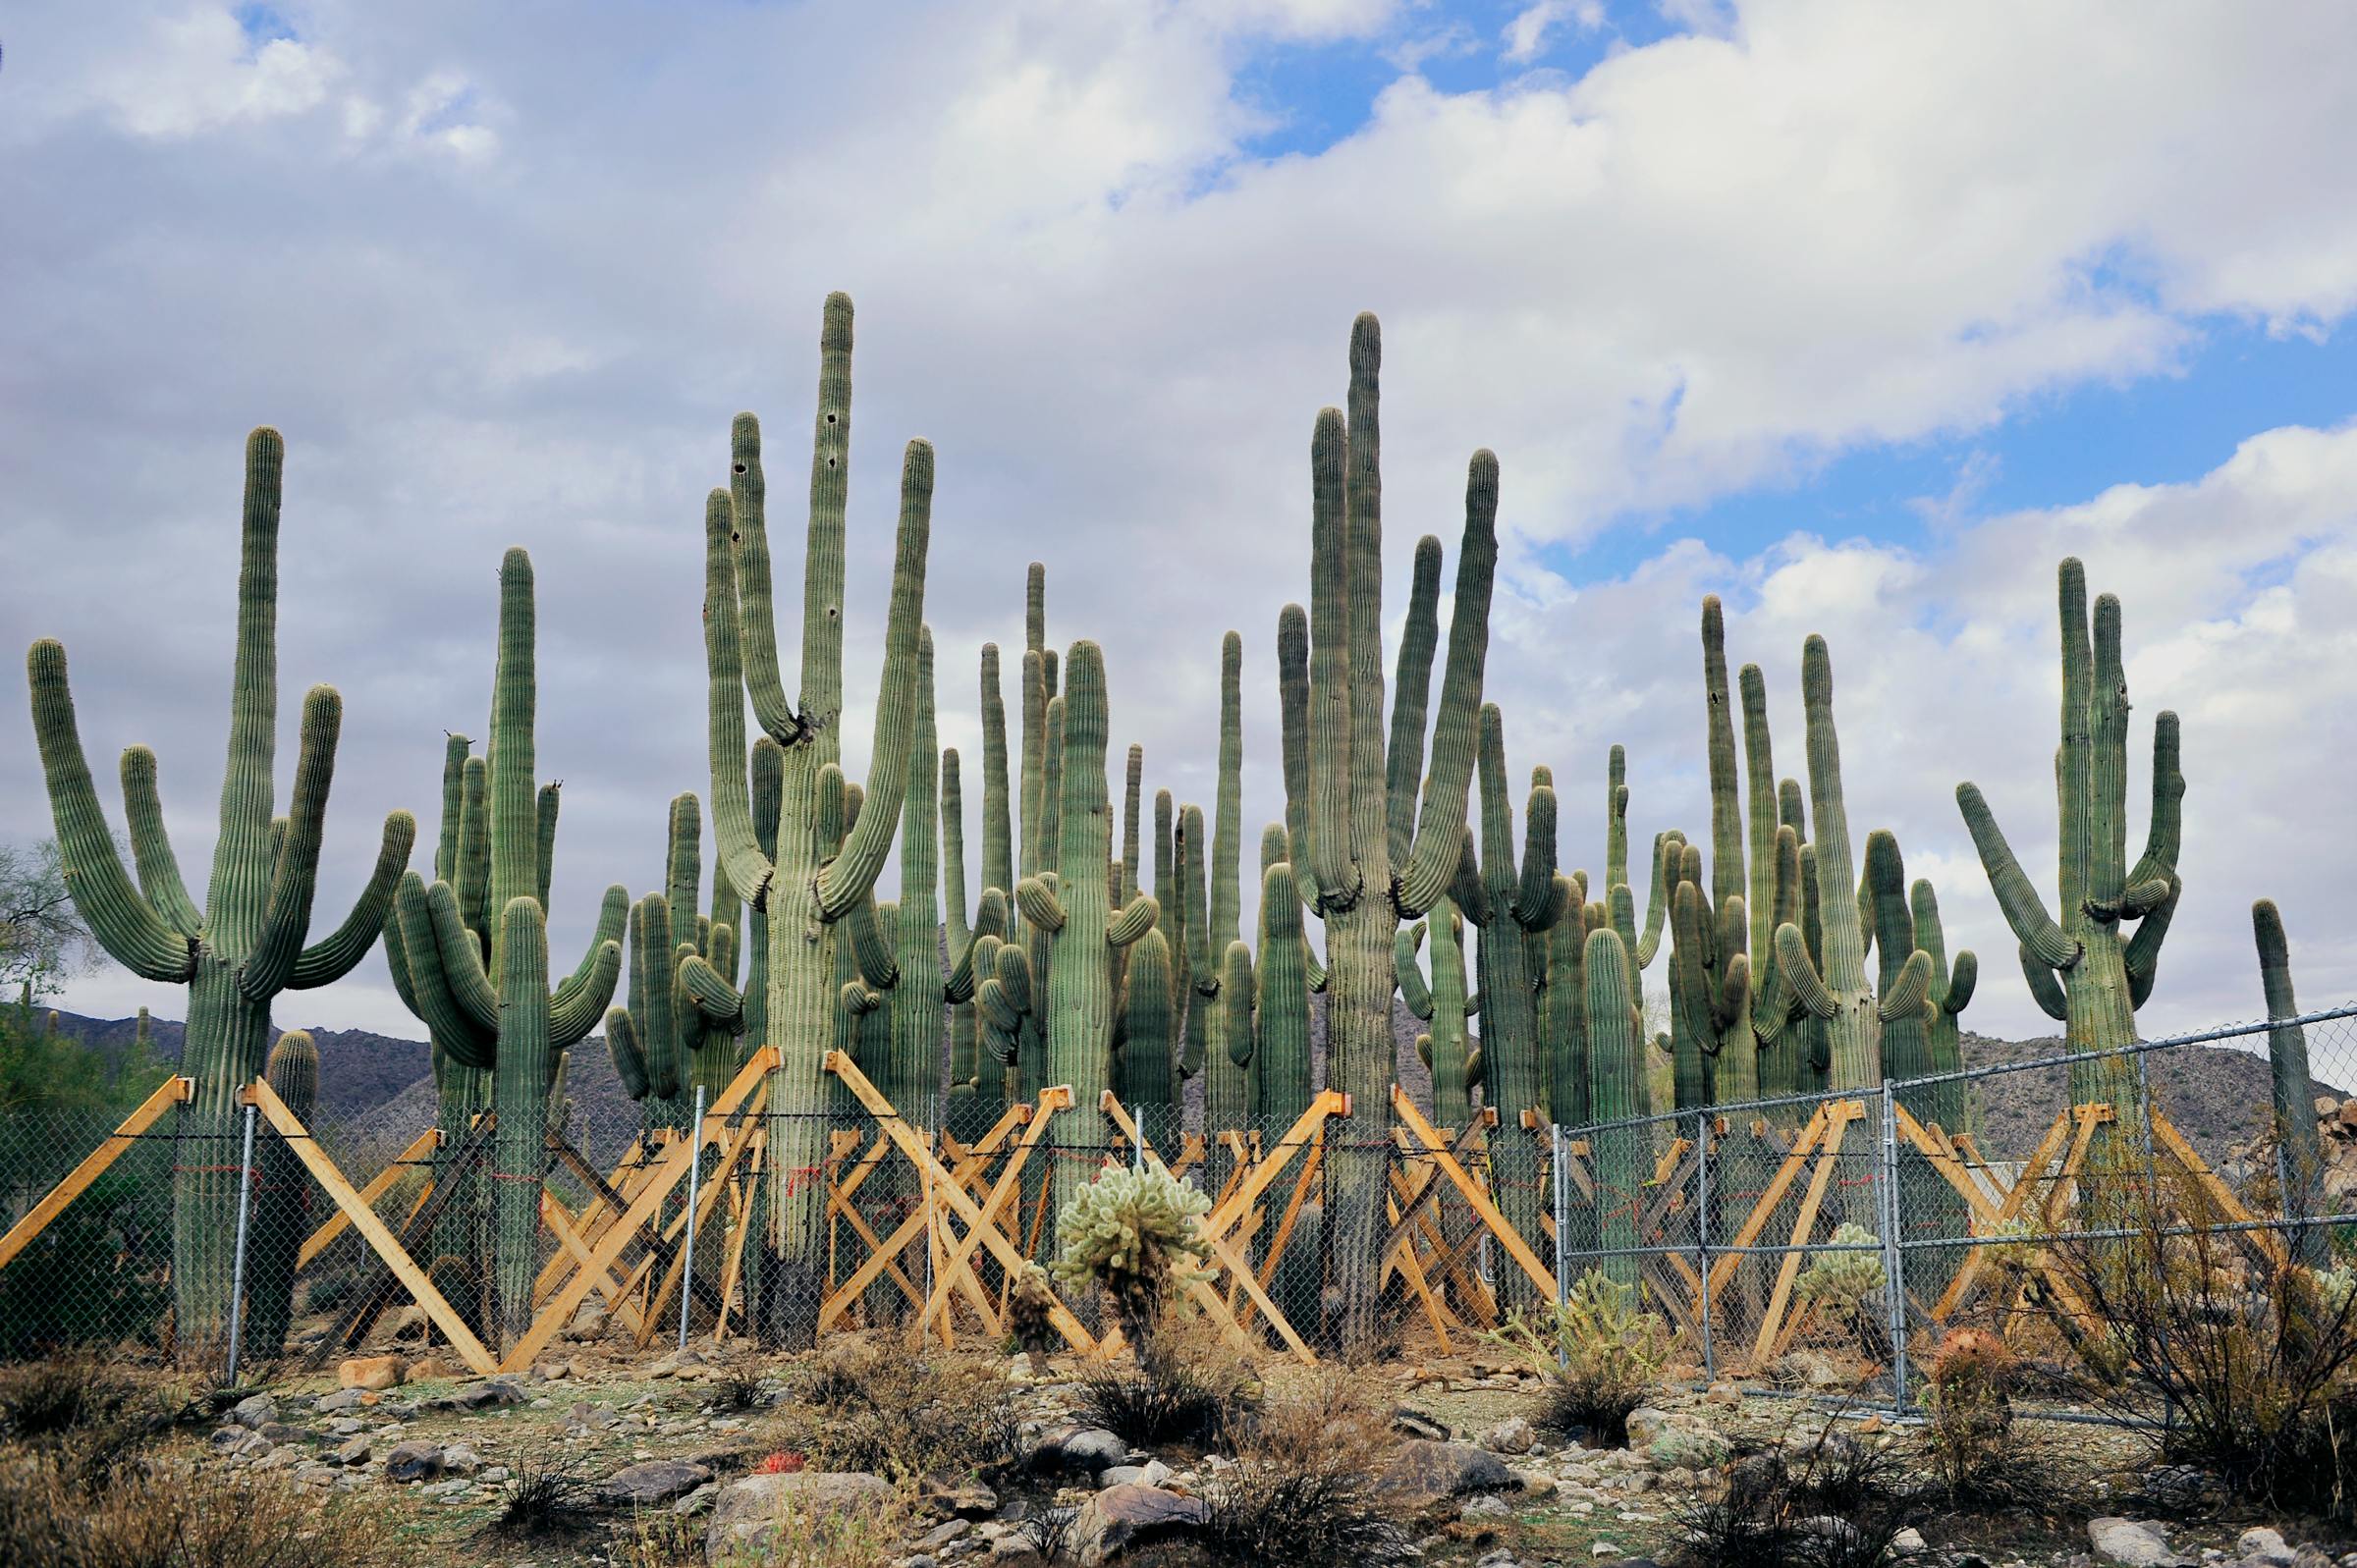 Saguaros in Chain Link Cage.jpg